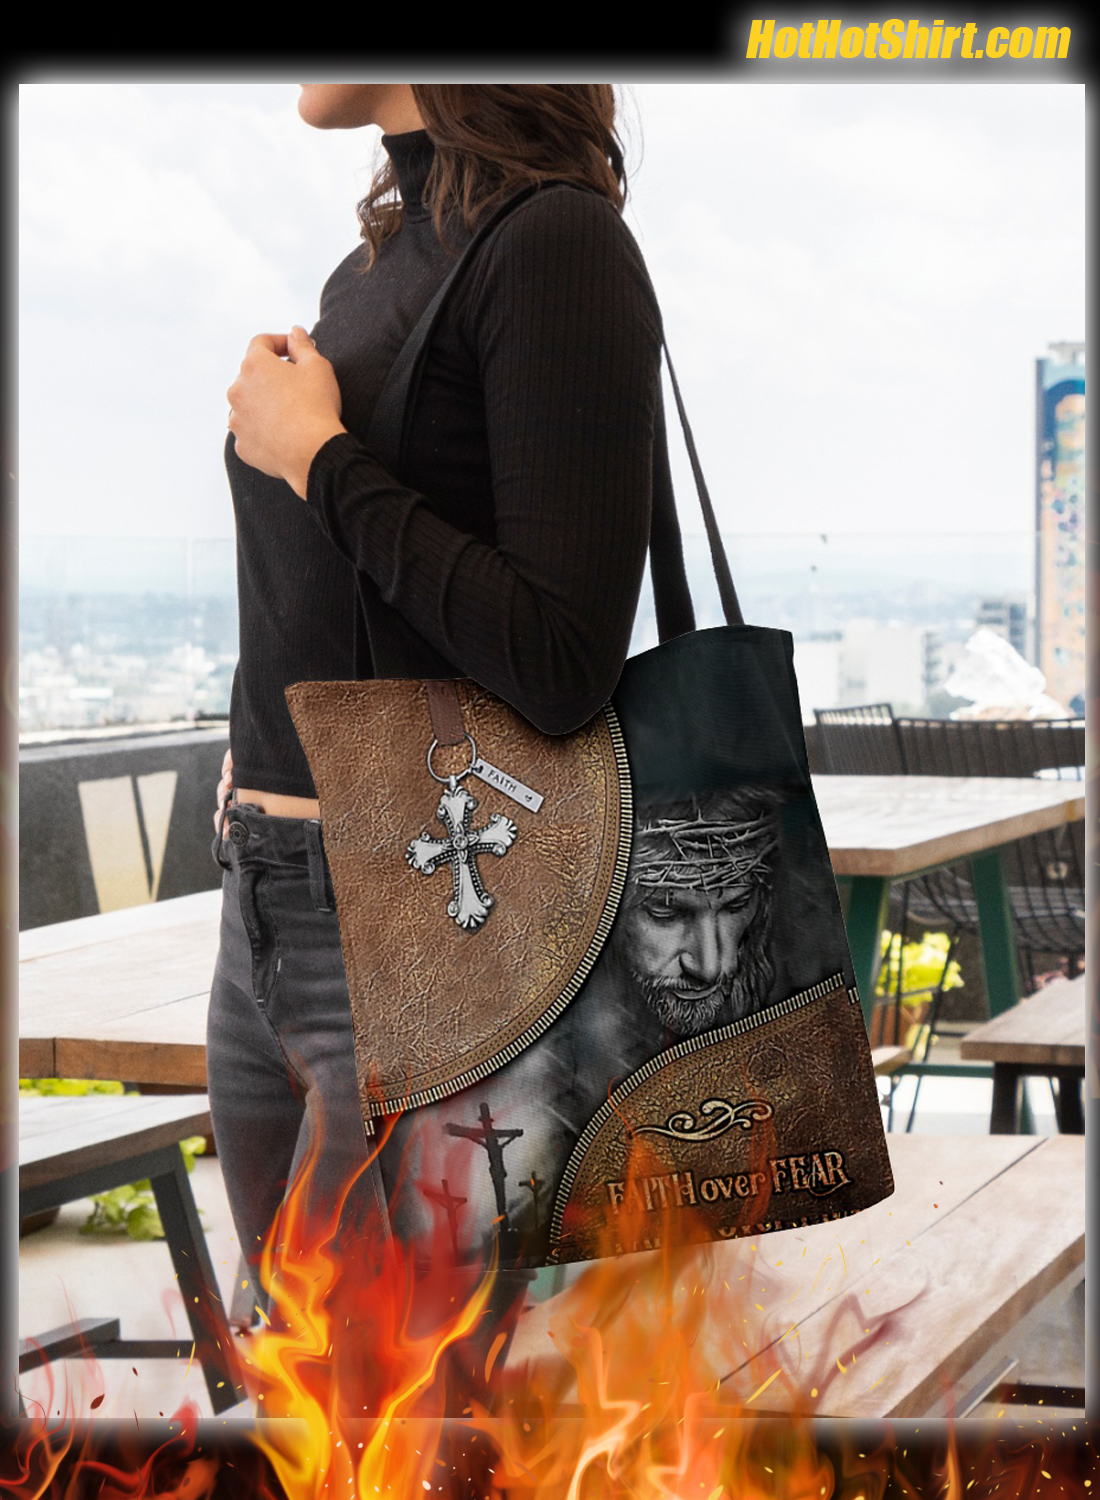 Jesus faith over fear tote bag 1